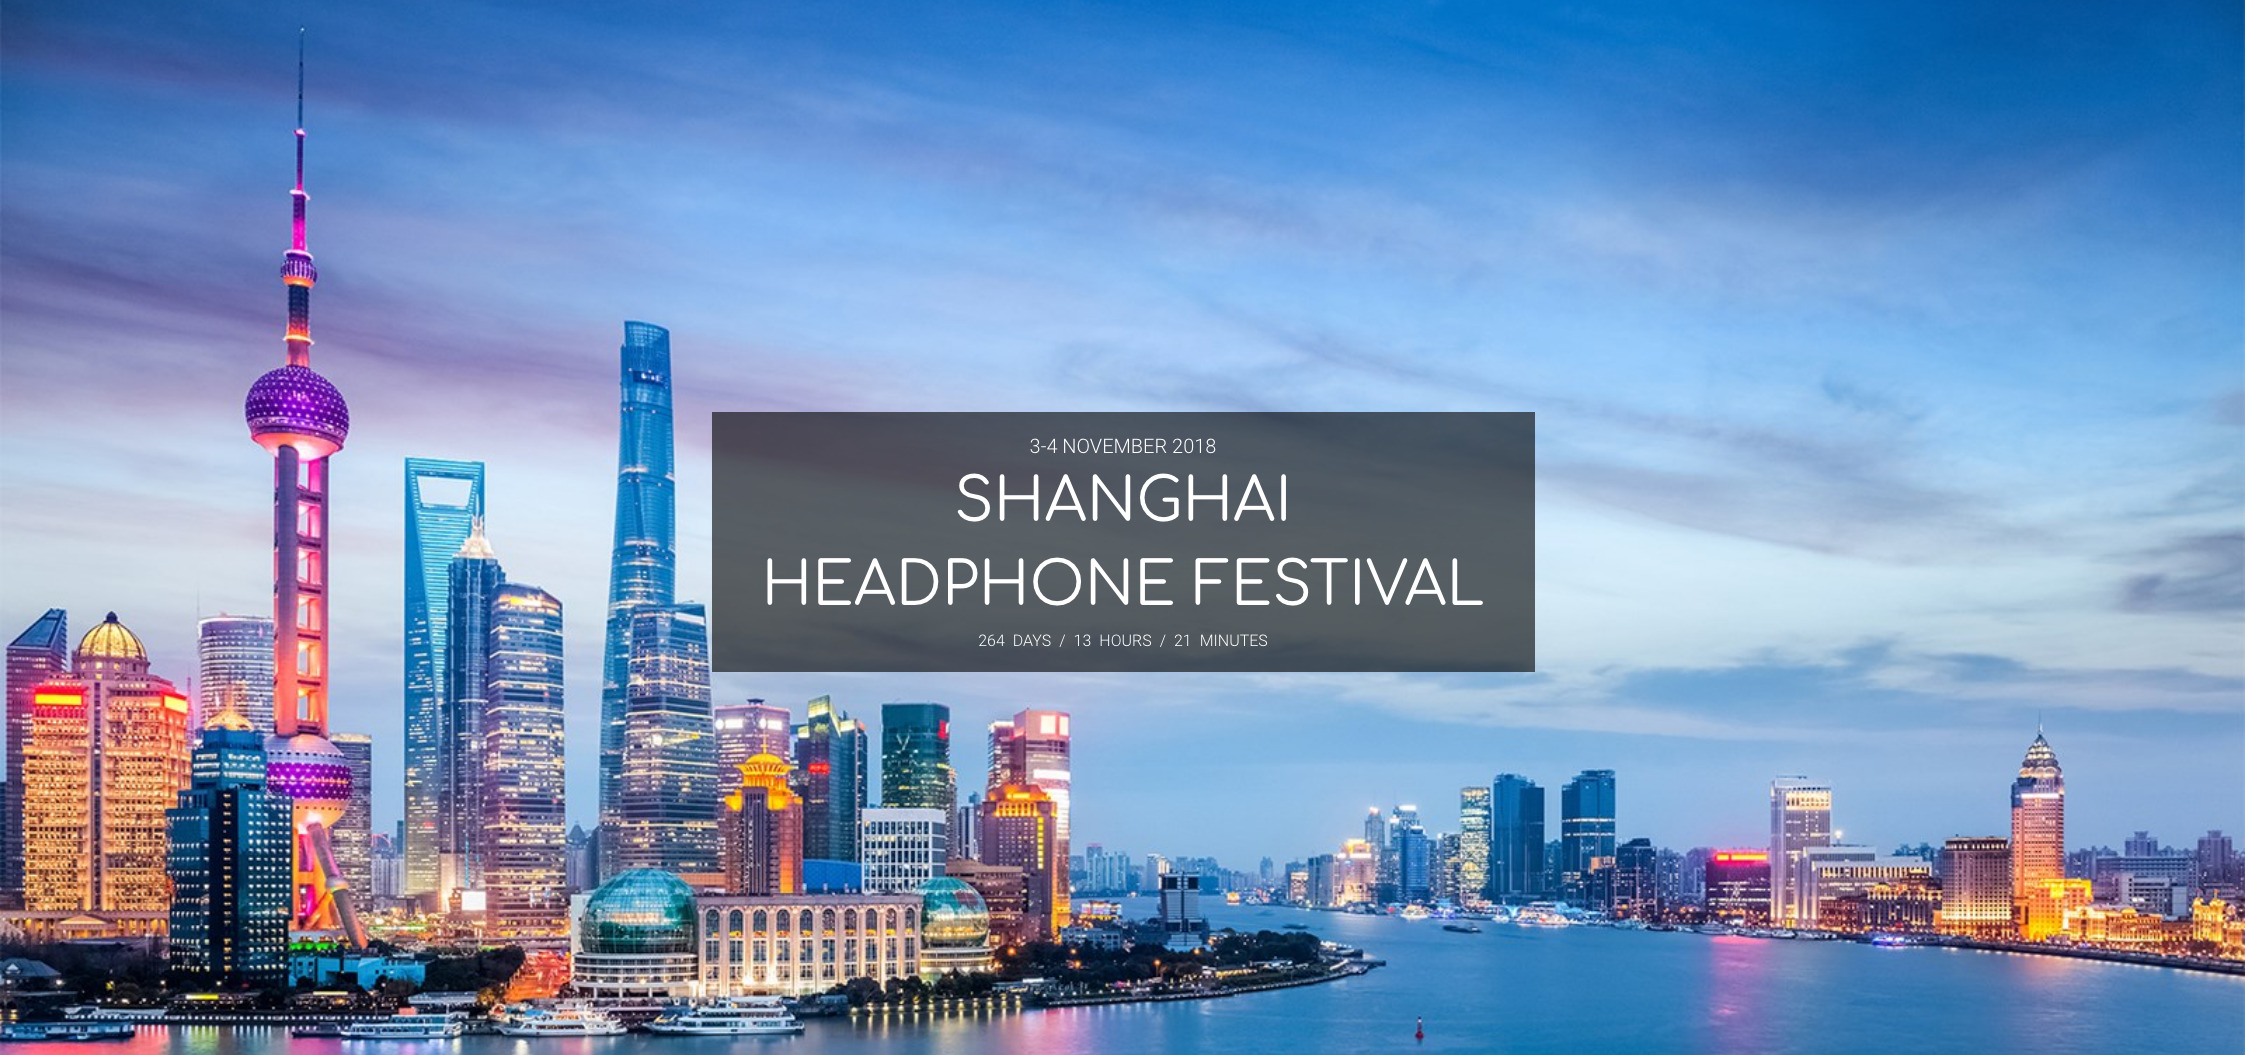 Shanghai Headphone Festival